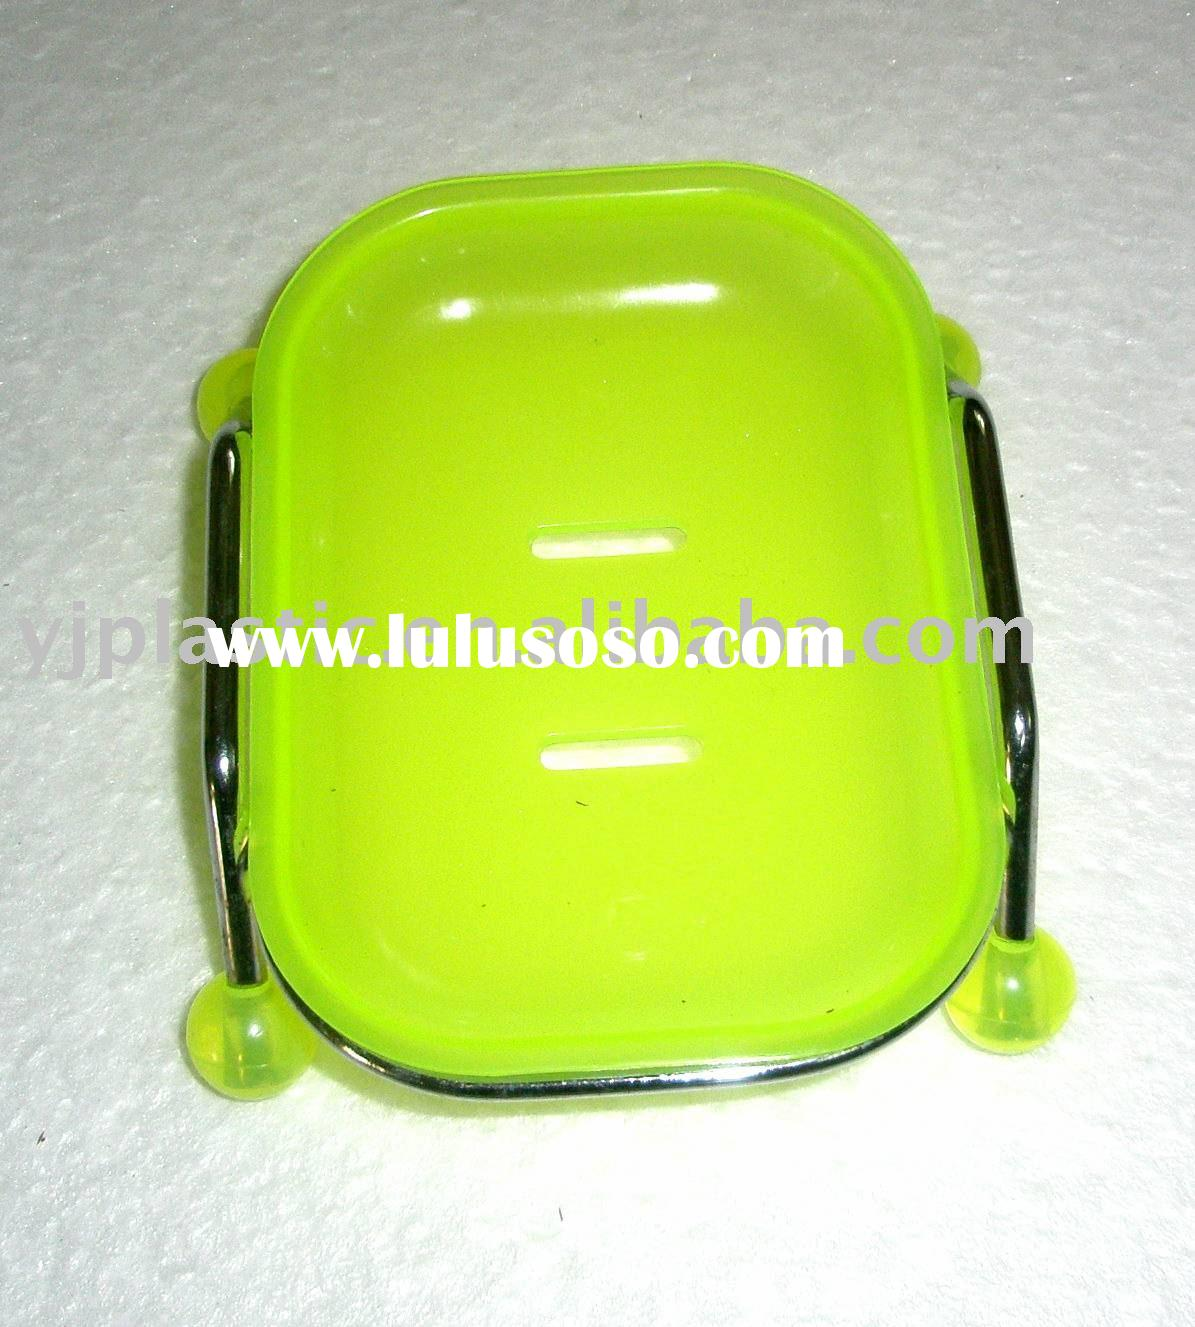 plastic soap holder, soap case, soap dish, soap container, soap box